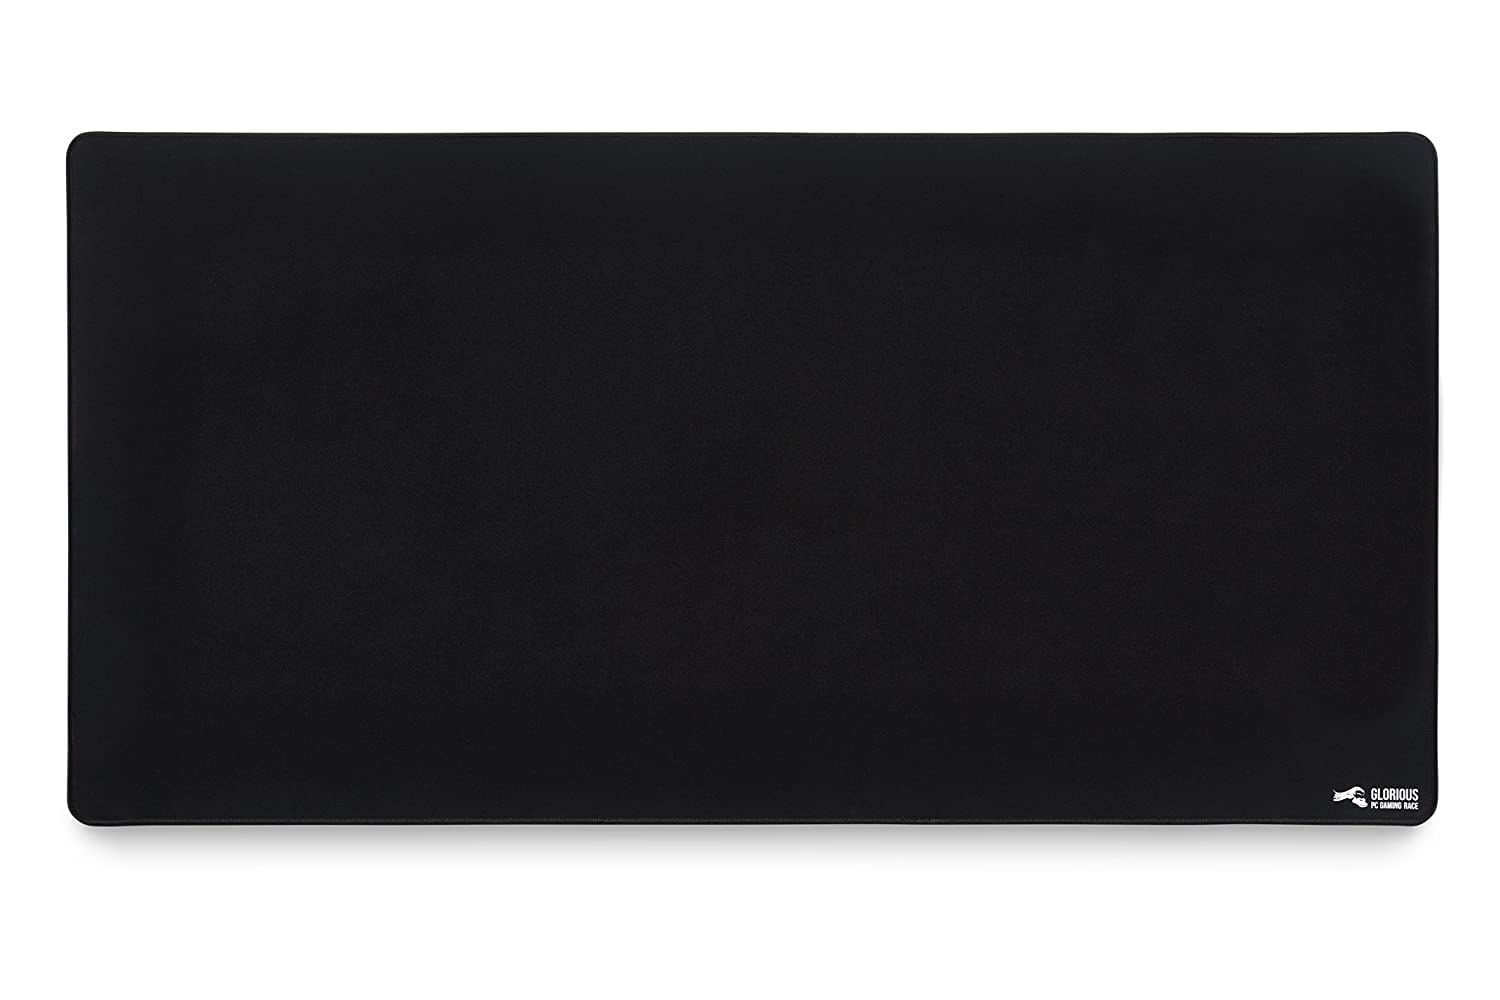 Mouse Pad Glorious Gaming G-xxl  91x45cm Negro